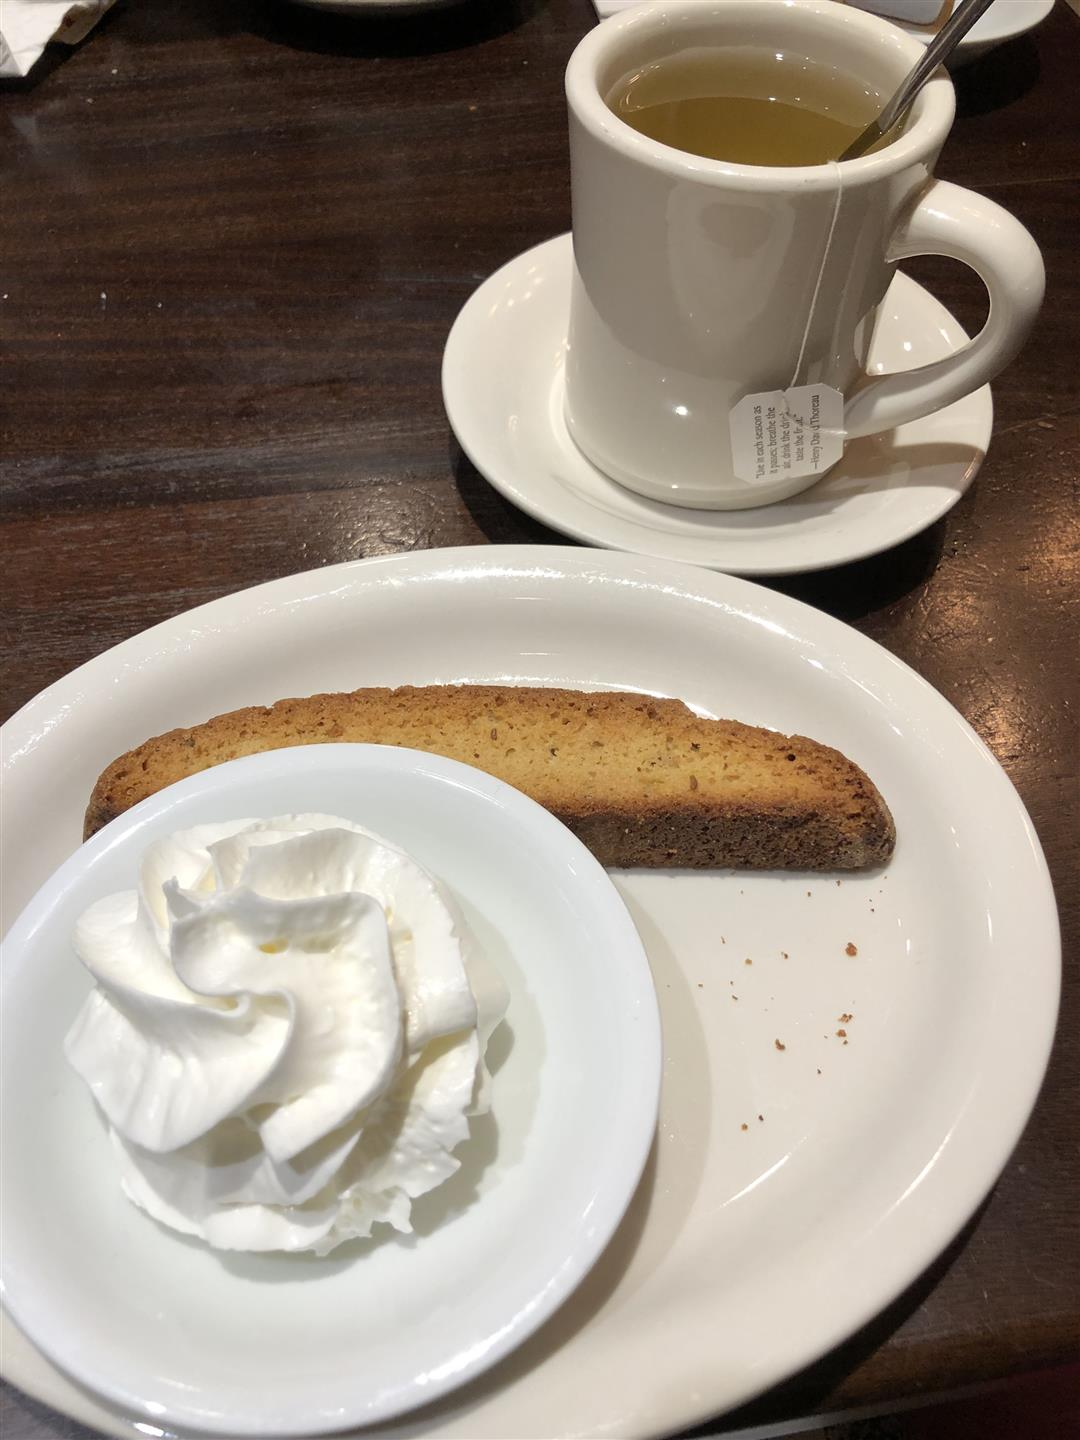 Biscotti with whipped cream and honey